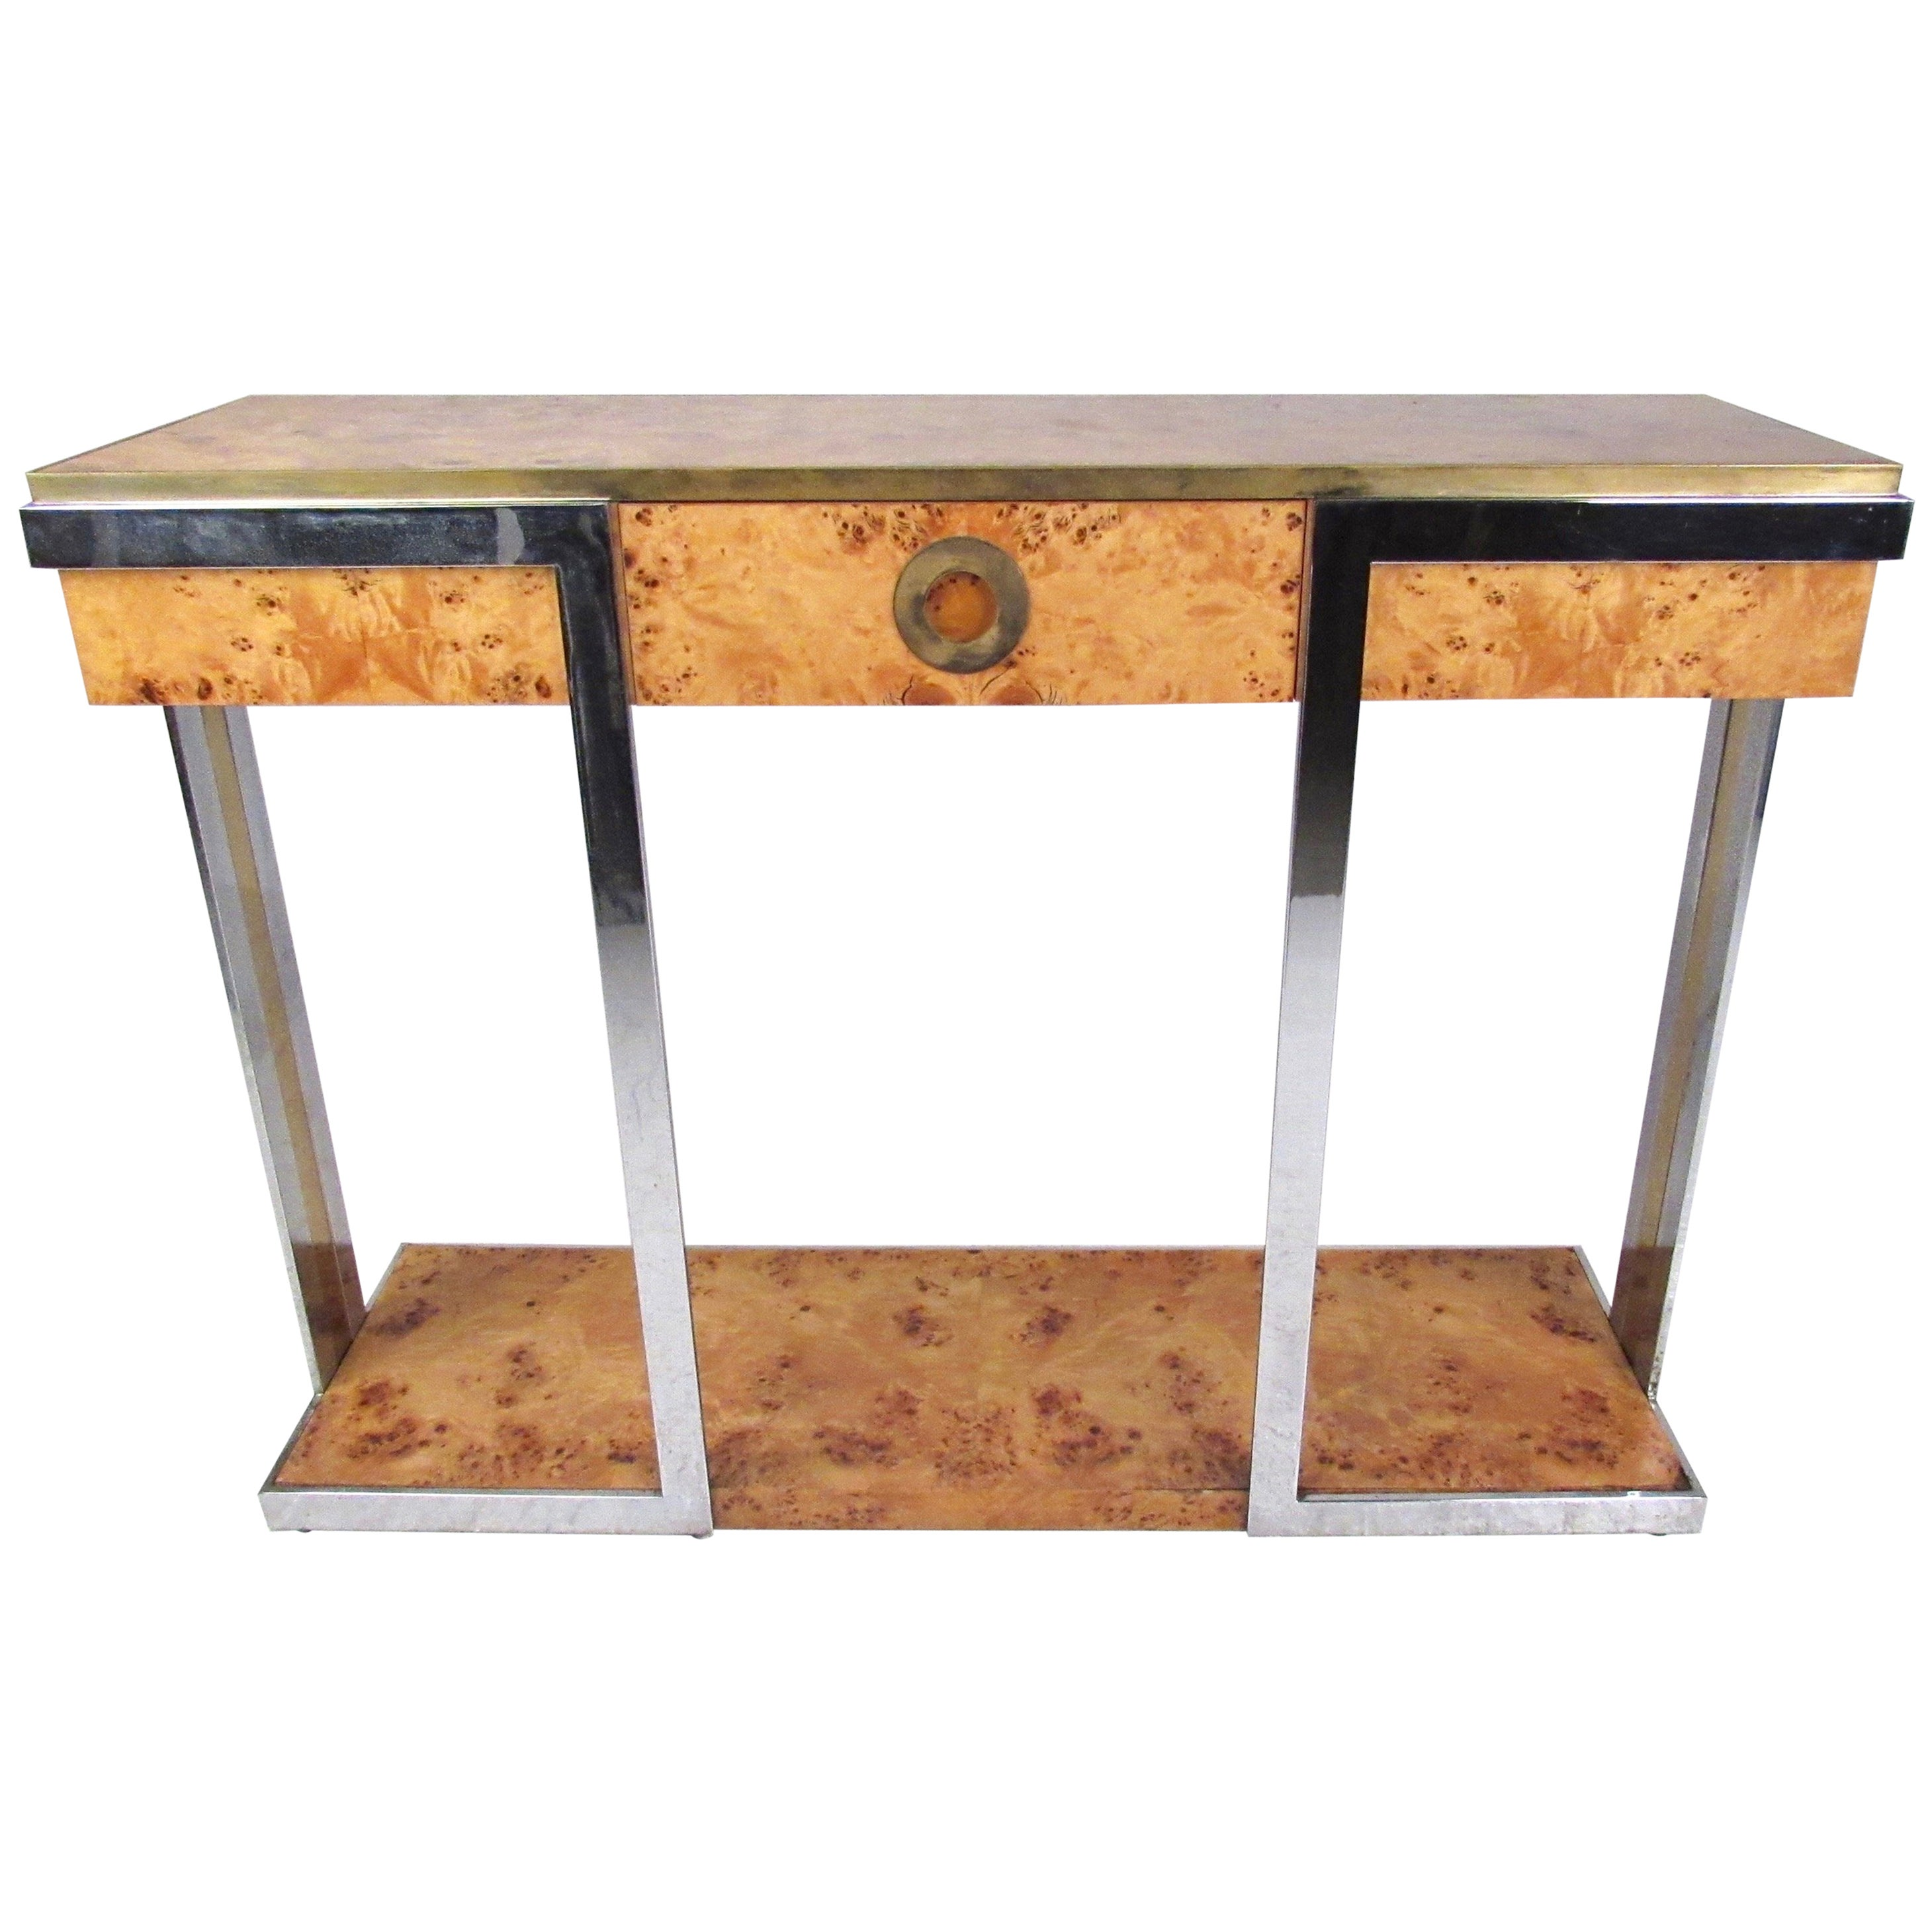 Vintage Hall Table Willy Rizzo Console Table In Burlwood And Brass By Mario Sabot